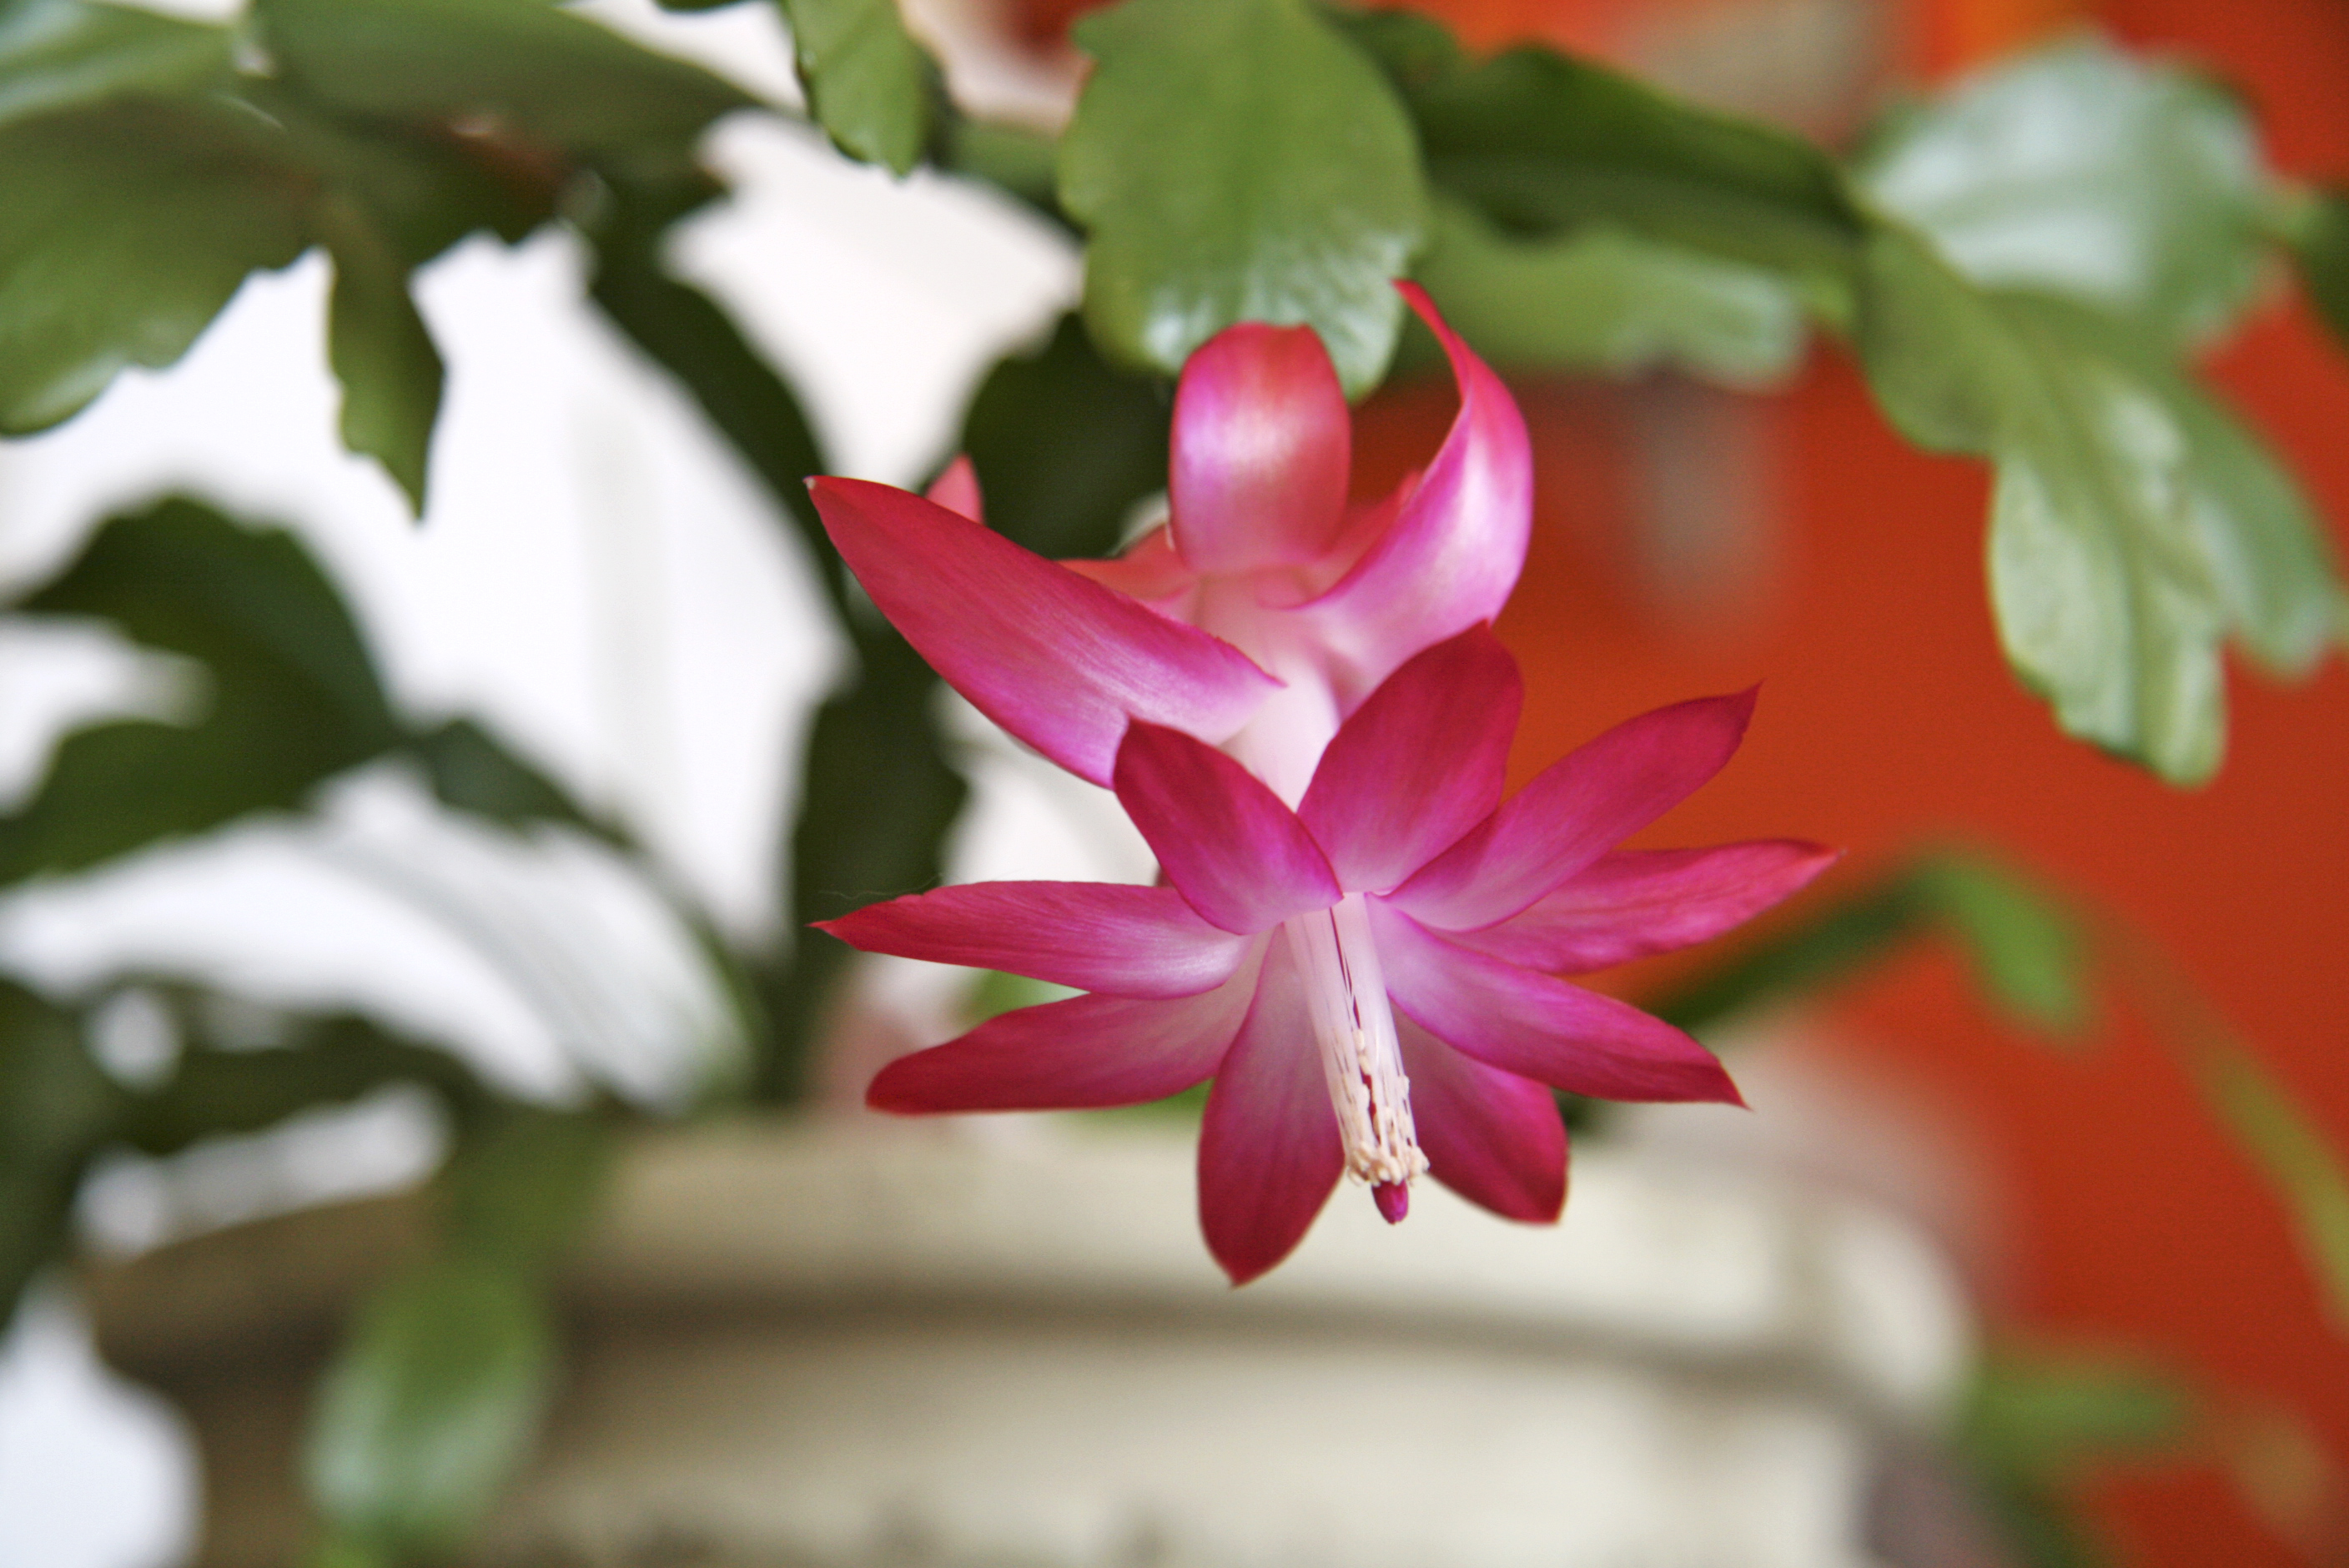 How To Care For Christmas Cactus.The Christmas Cactus Interior Office Plants